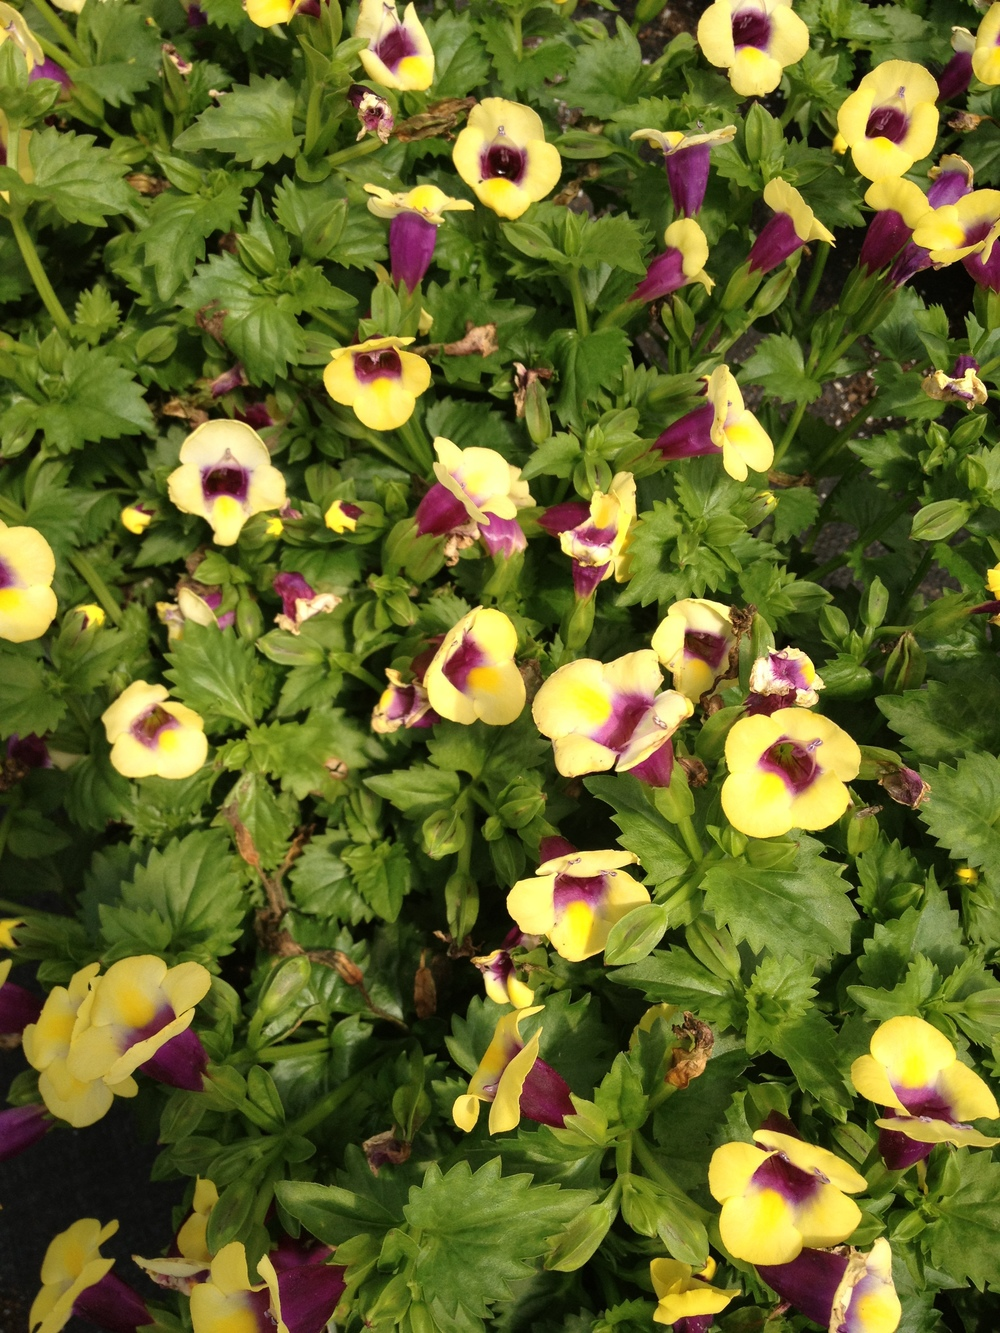 "Torenia has seen improved popularity in recent years. It's unique flower shape and it's trailing habits lend it a unique opportunity as an excellent shade item. It can do well during the humid summer months and works best in planters and baskets. It is available in 4.5"" pots."